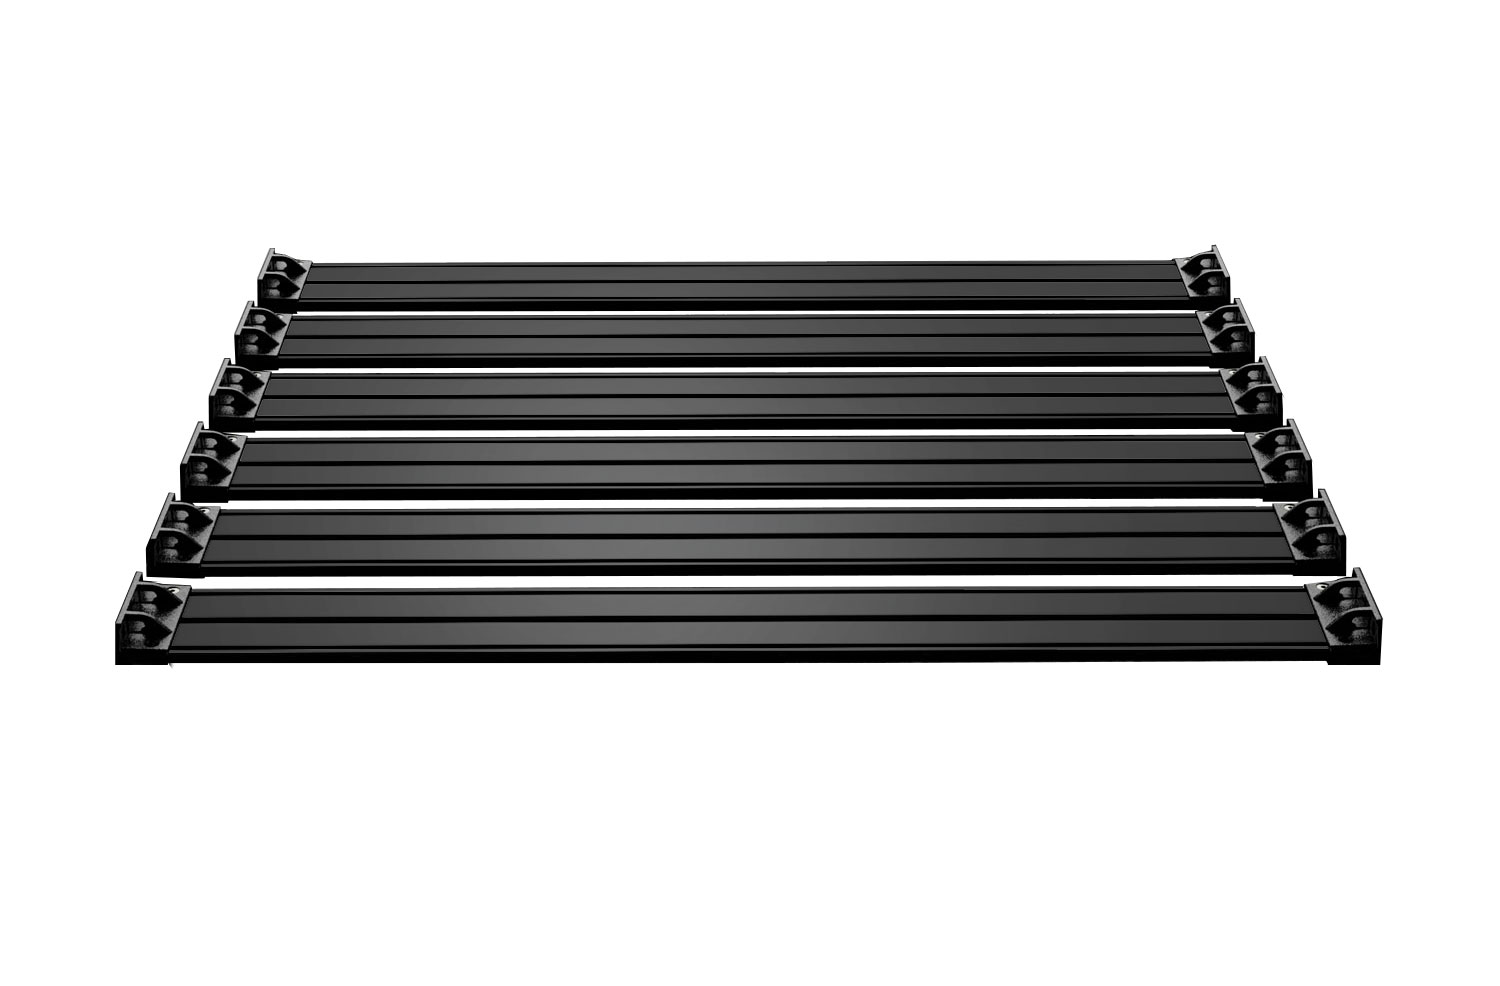 Teraflex Nebo Roof Rack Cargo Slat Kit - Black - JK 4DR